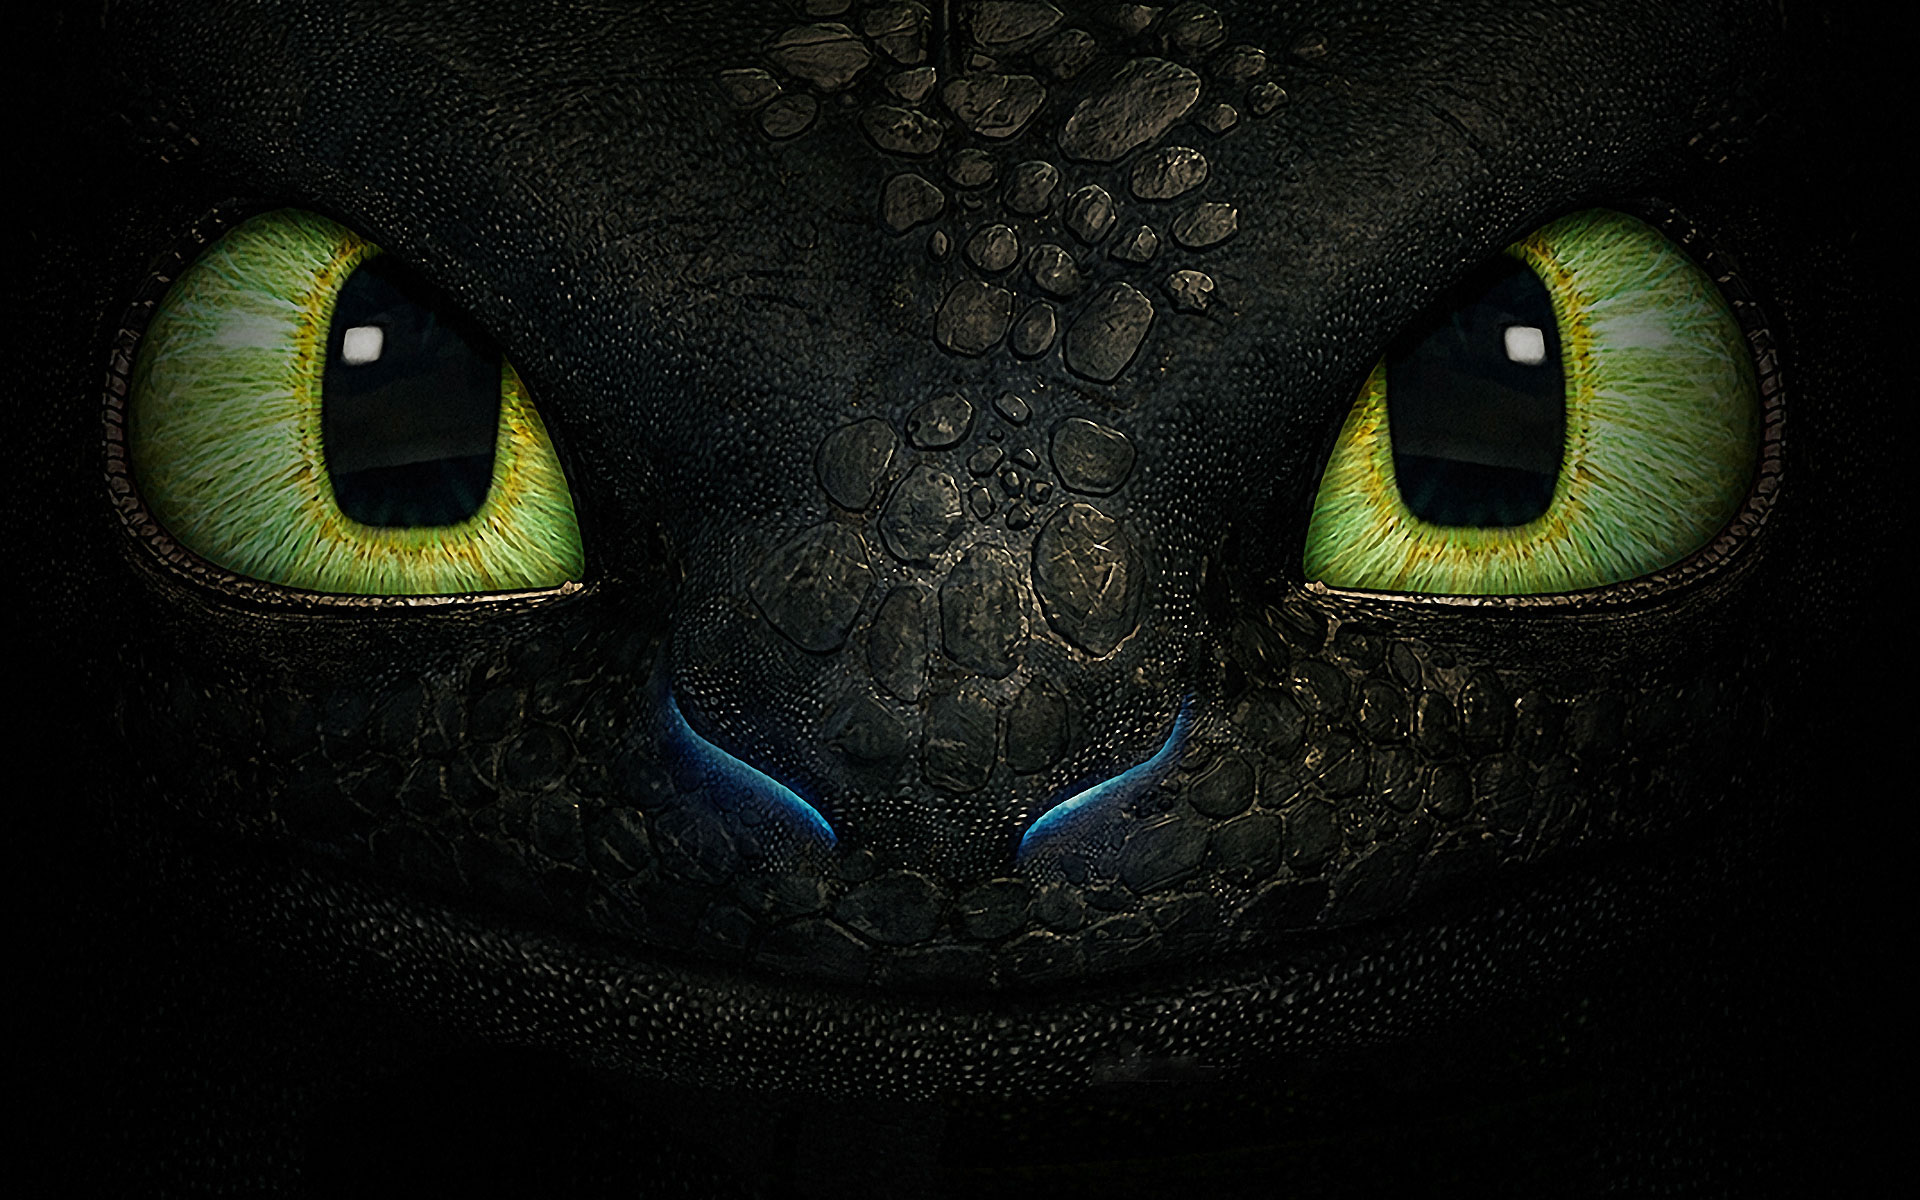 77 Toothless Dragon Wallpaper On Wallpapersafari